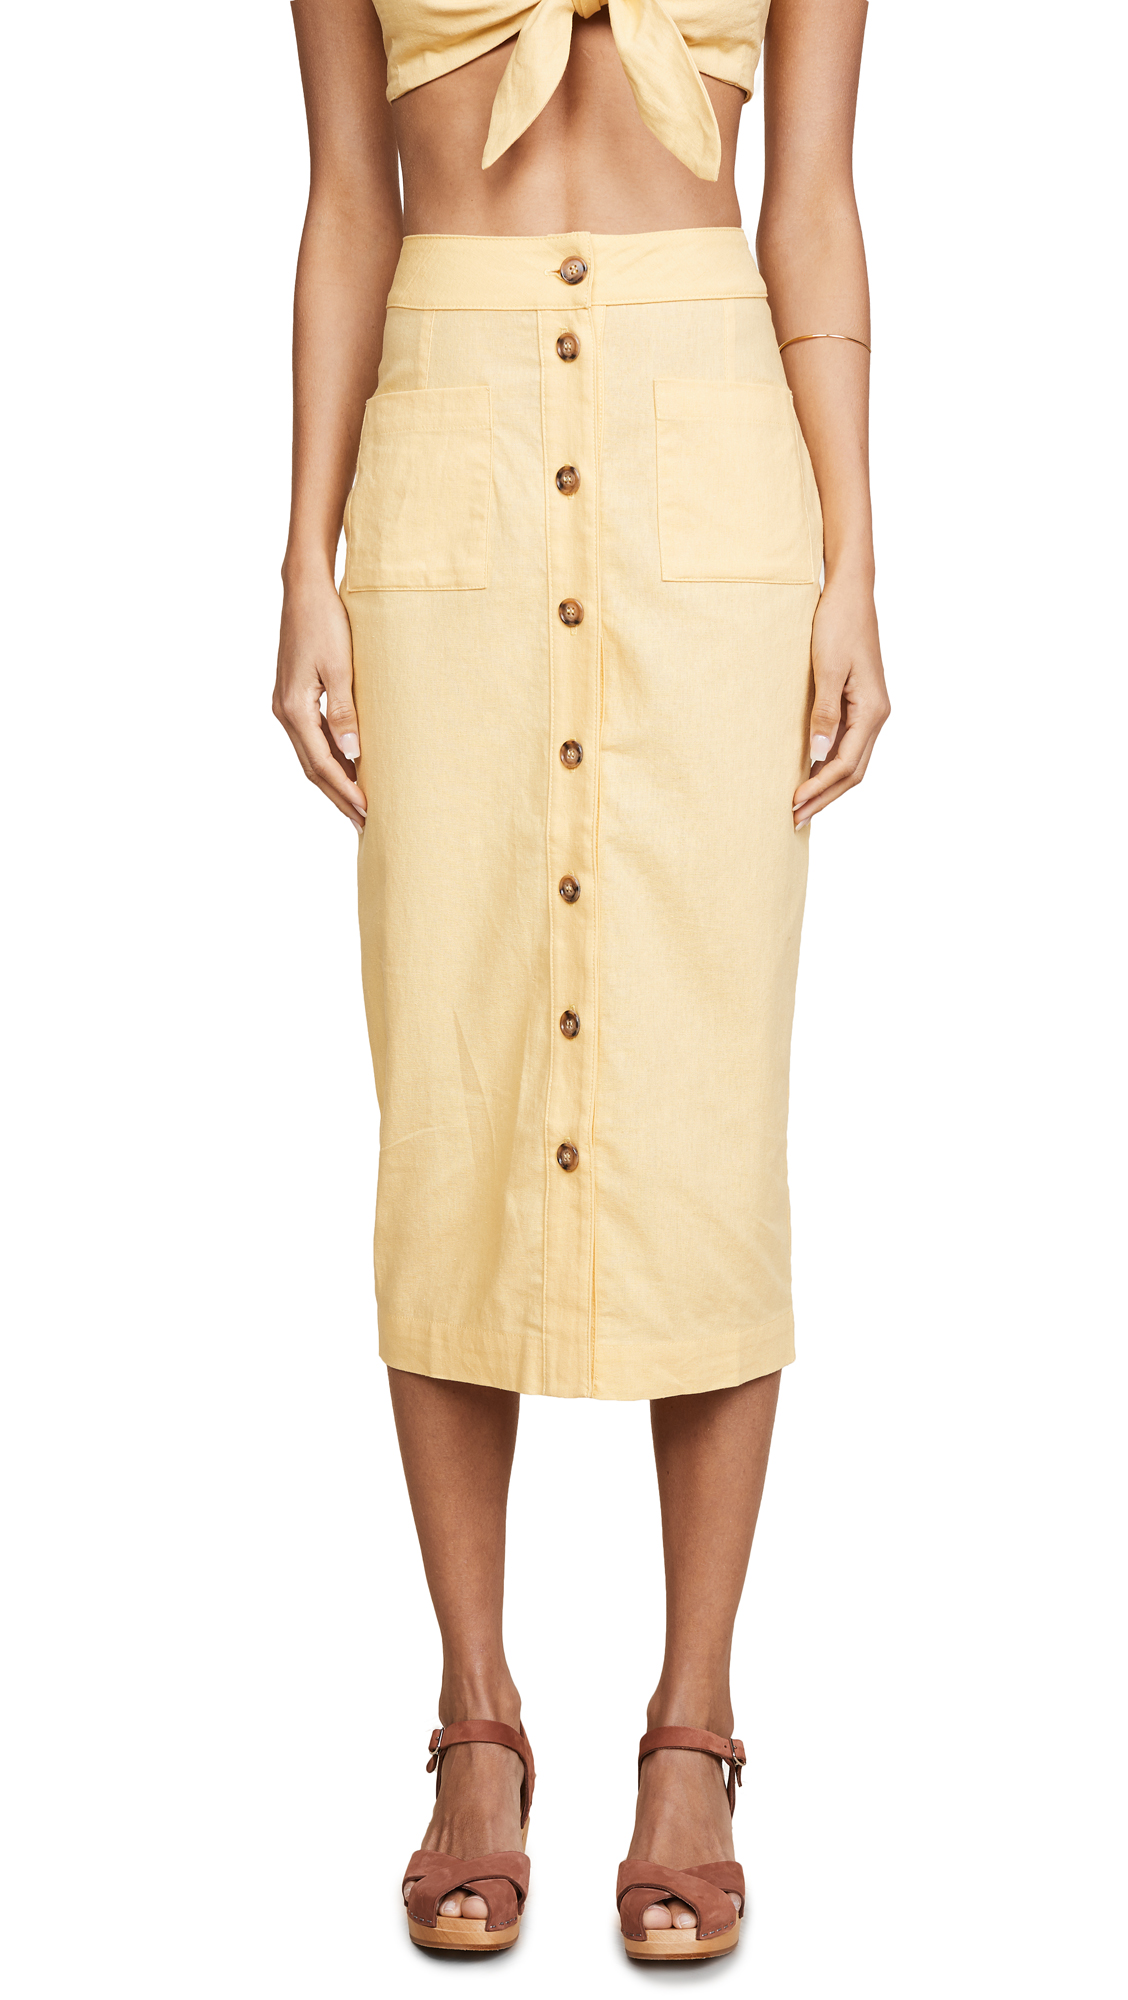 CLAYTON BECKER SKIRT